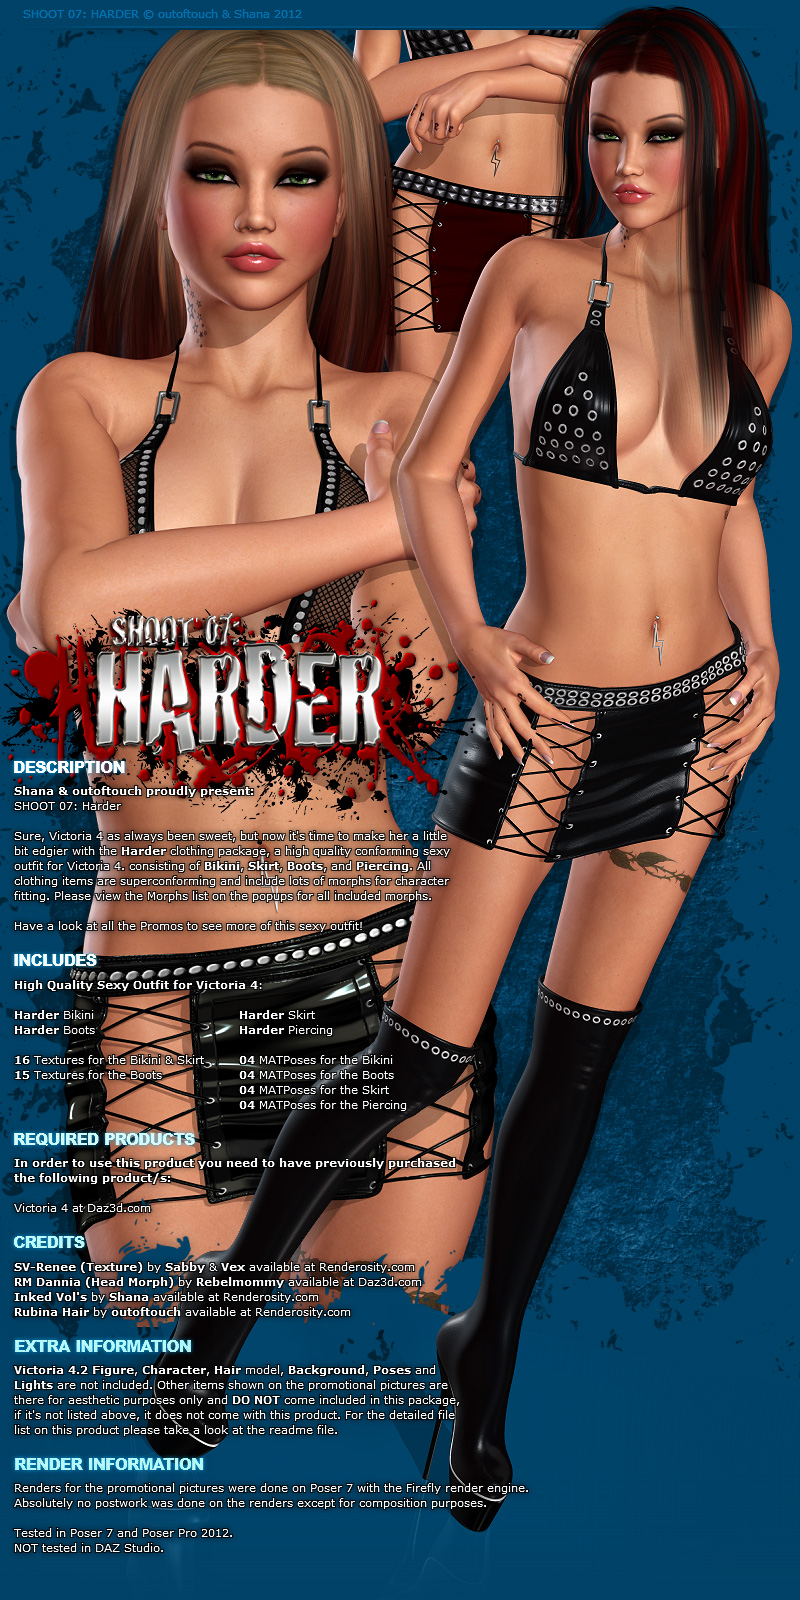 SHOOT 07: Harder